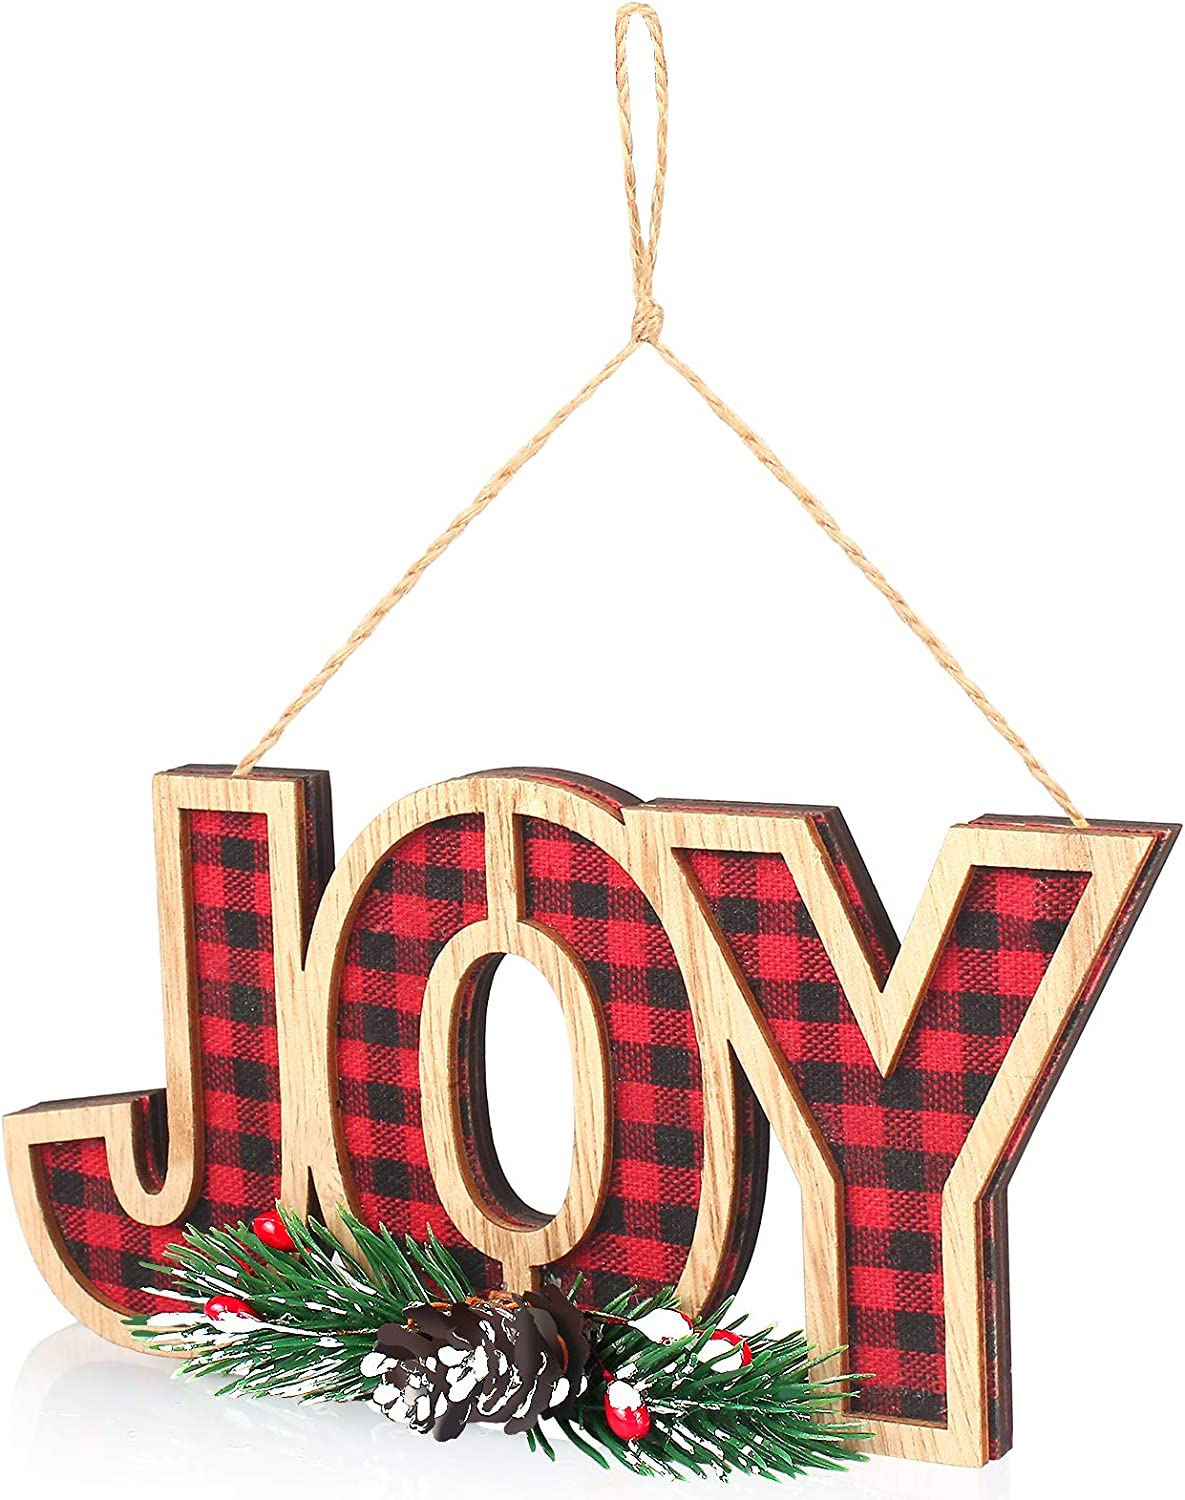 WizPower Christmas Joy Sign Ornament, Wooden Christmas Plaid Decoration Red Black Xmas Décor for Door Wall Home Kitchen Tree